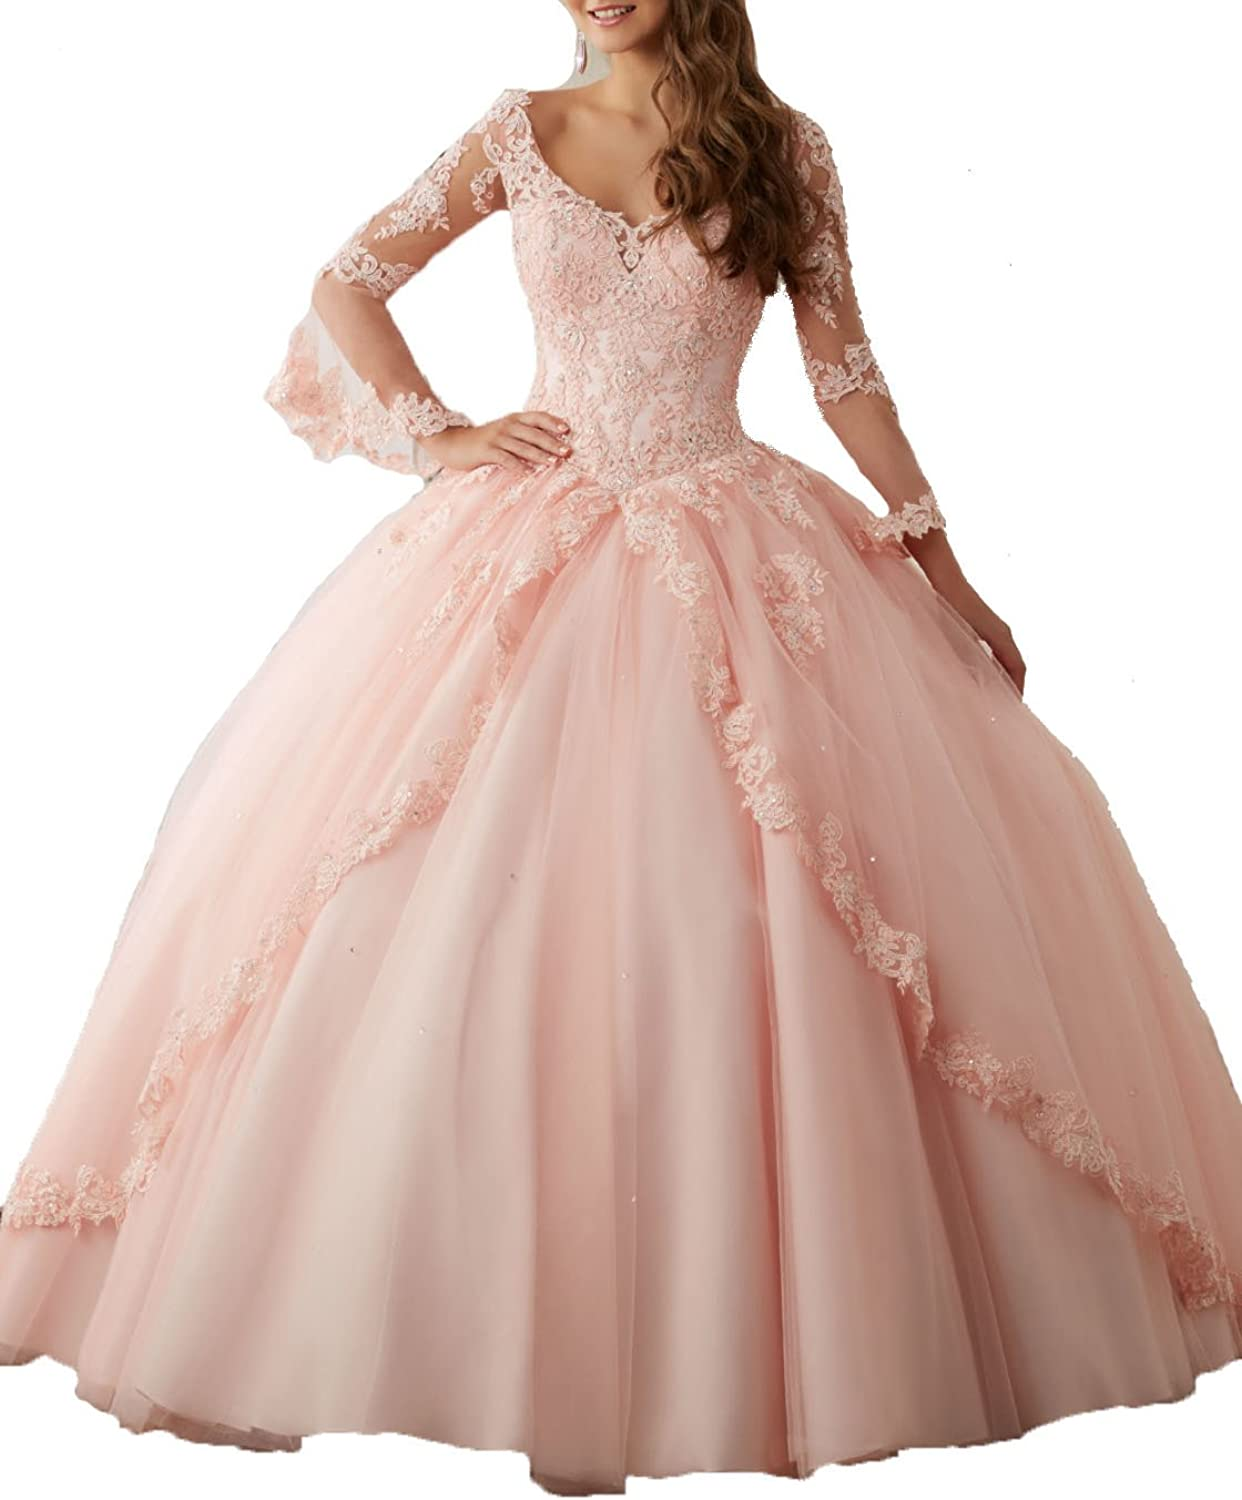 XSWPL Applique Tulle Quinceanera Ball Gown Dresses Long Prom Dress